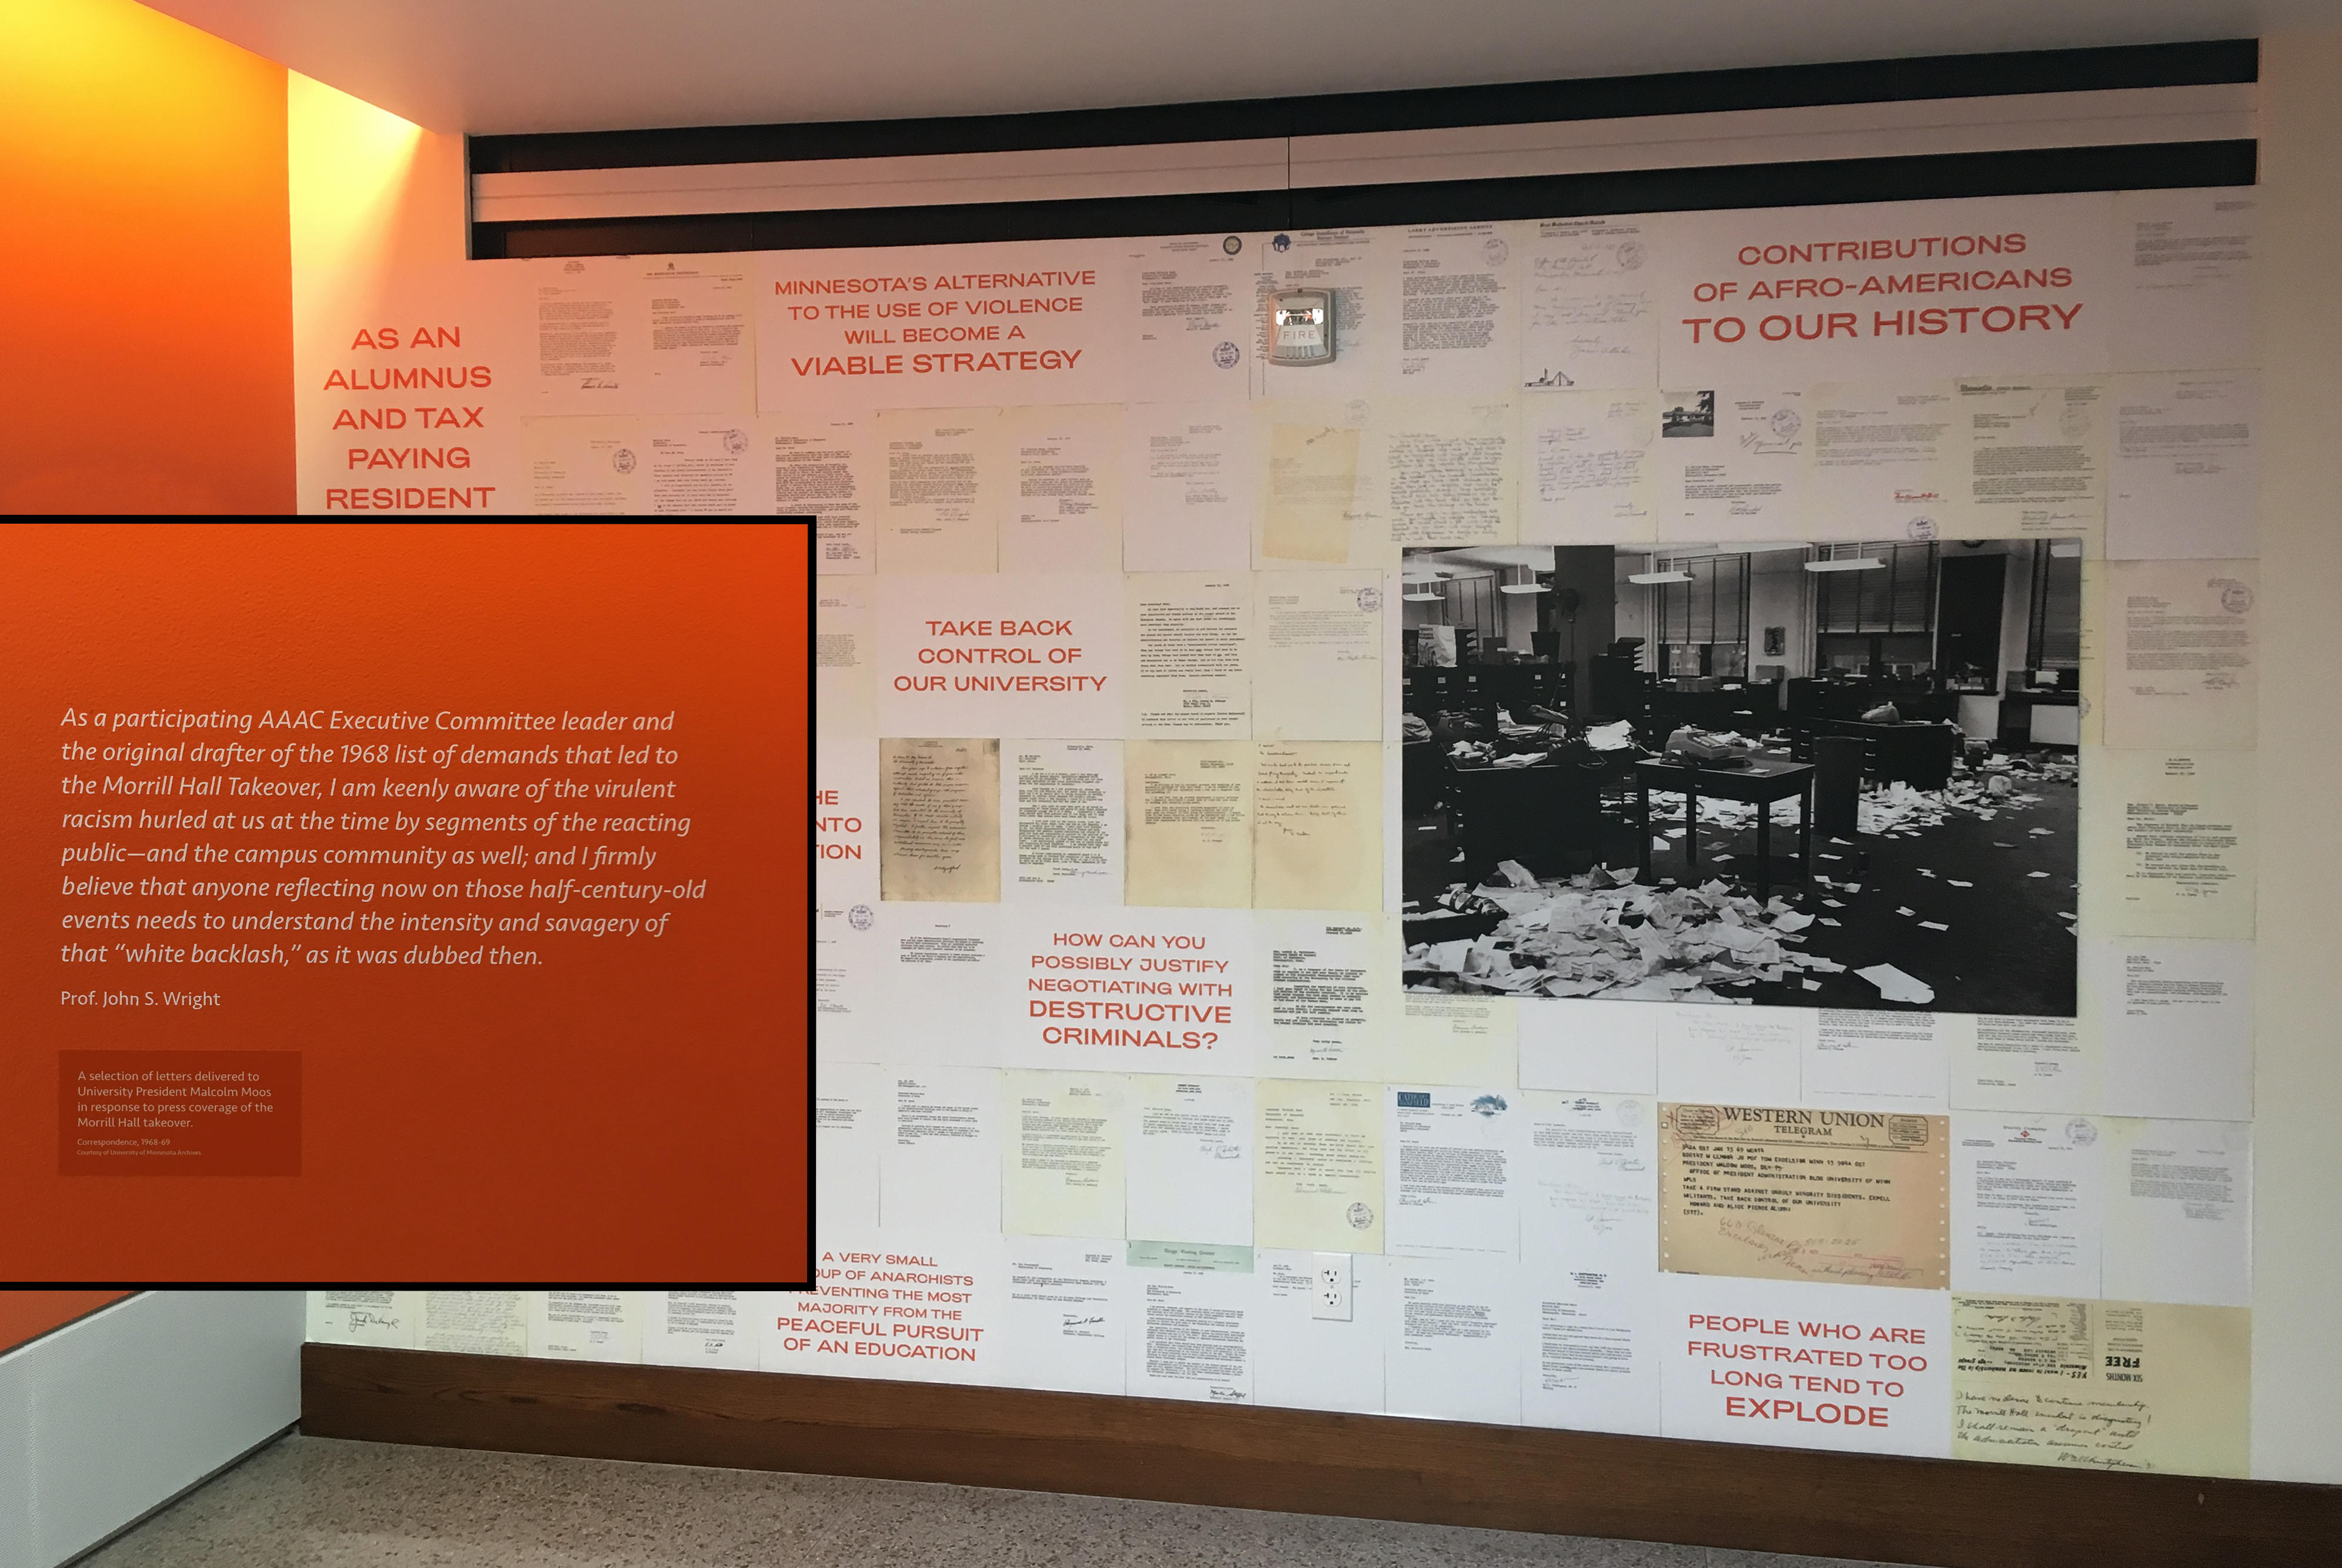 Takeover: Morrill Hall 1969 exhibit